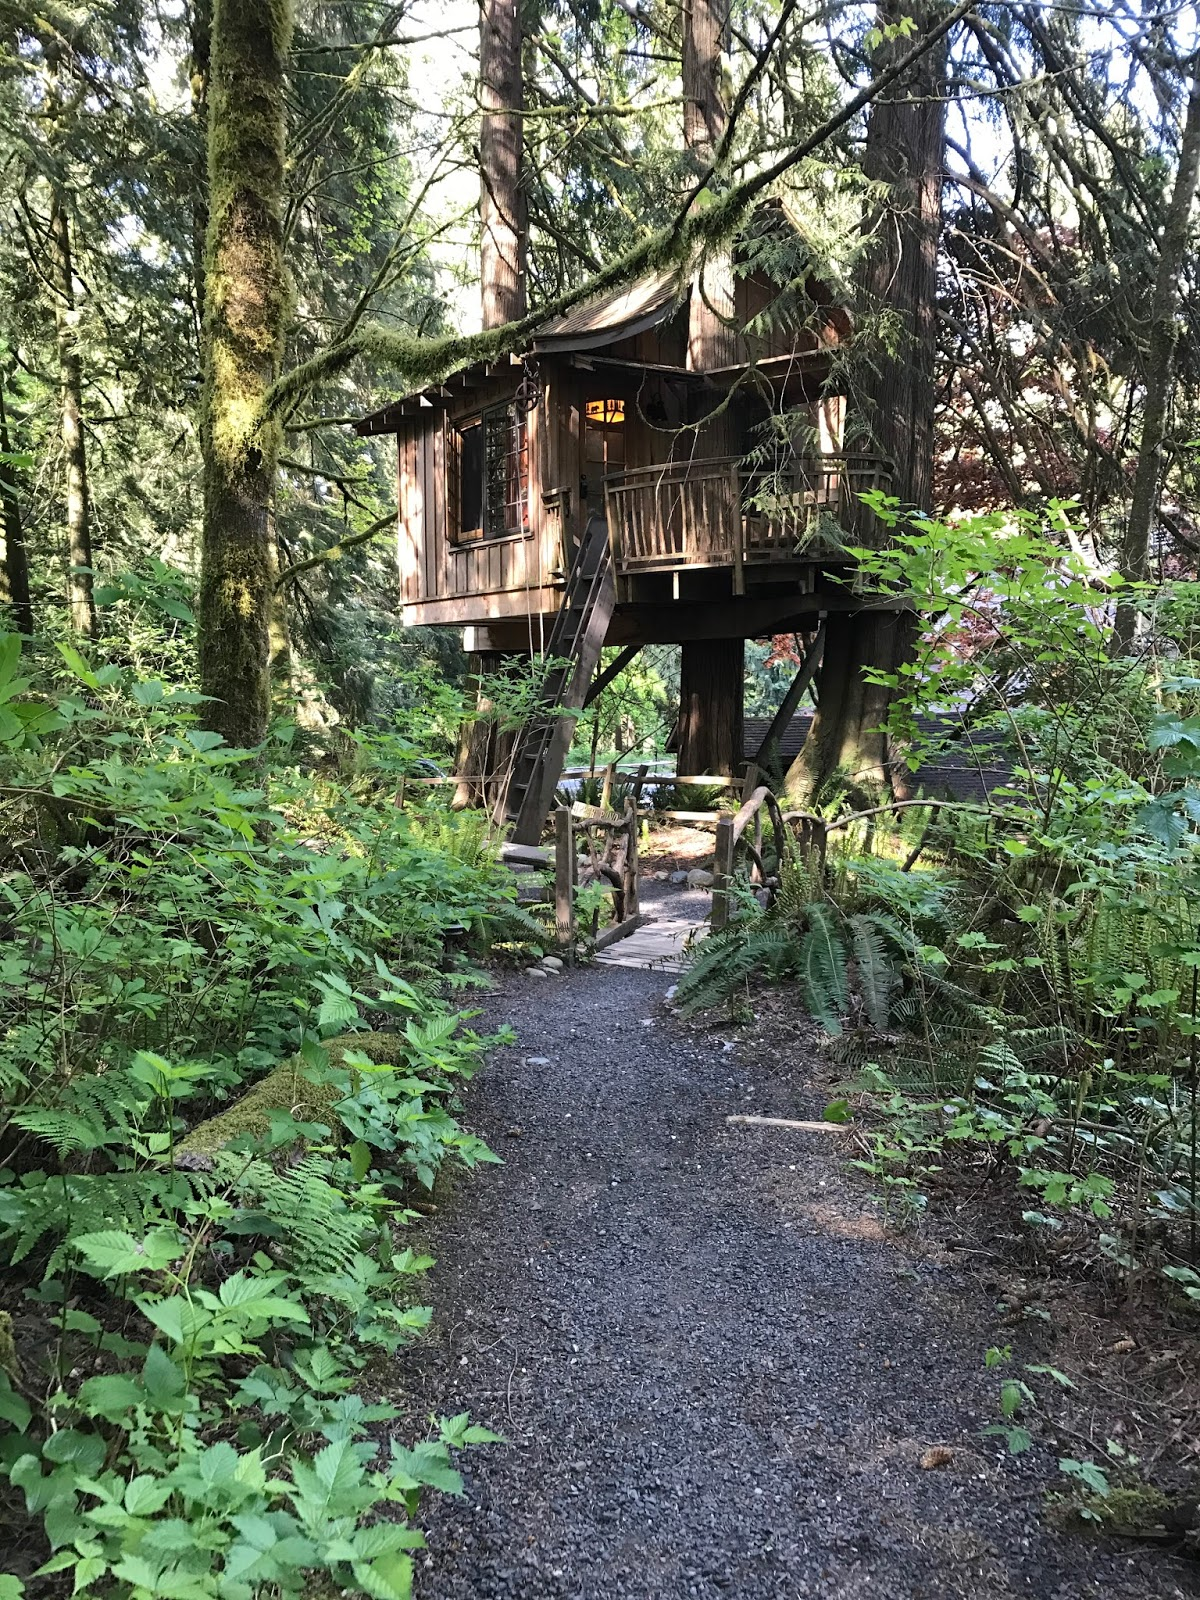 Treehouse masters treehouse point Issaquah Treehouse Point Was Created By Pete Nelson You Mightve Seen Him On Treehouse Masters Show Dedicated To People And The Process Of Building One Of These Green Wedding Shoes Treehouse Point Katie Scarlett Chronicles